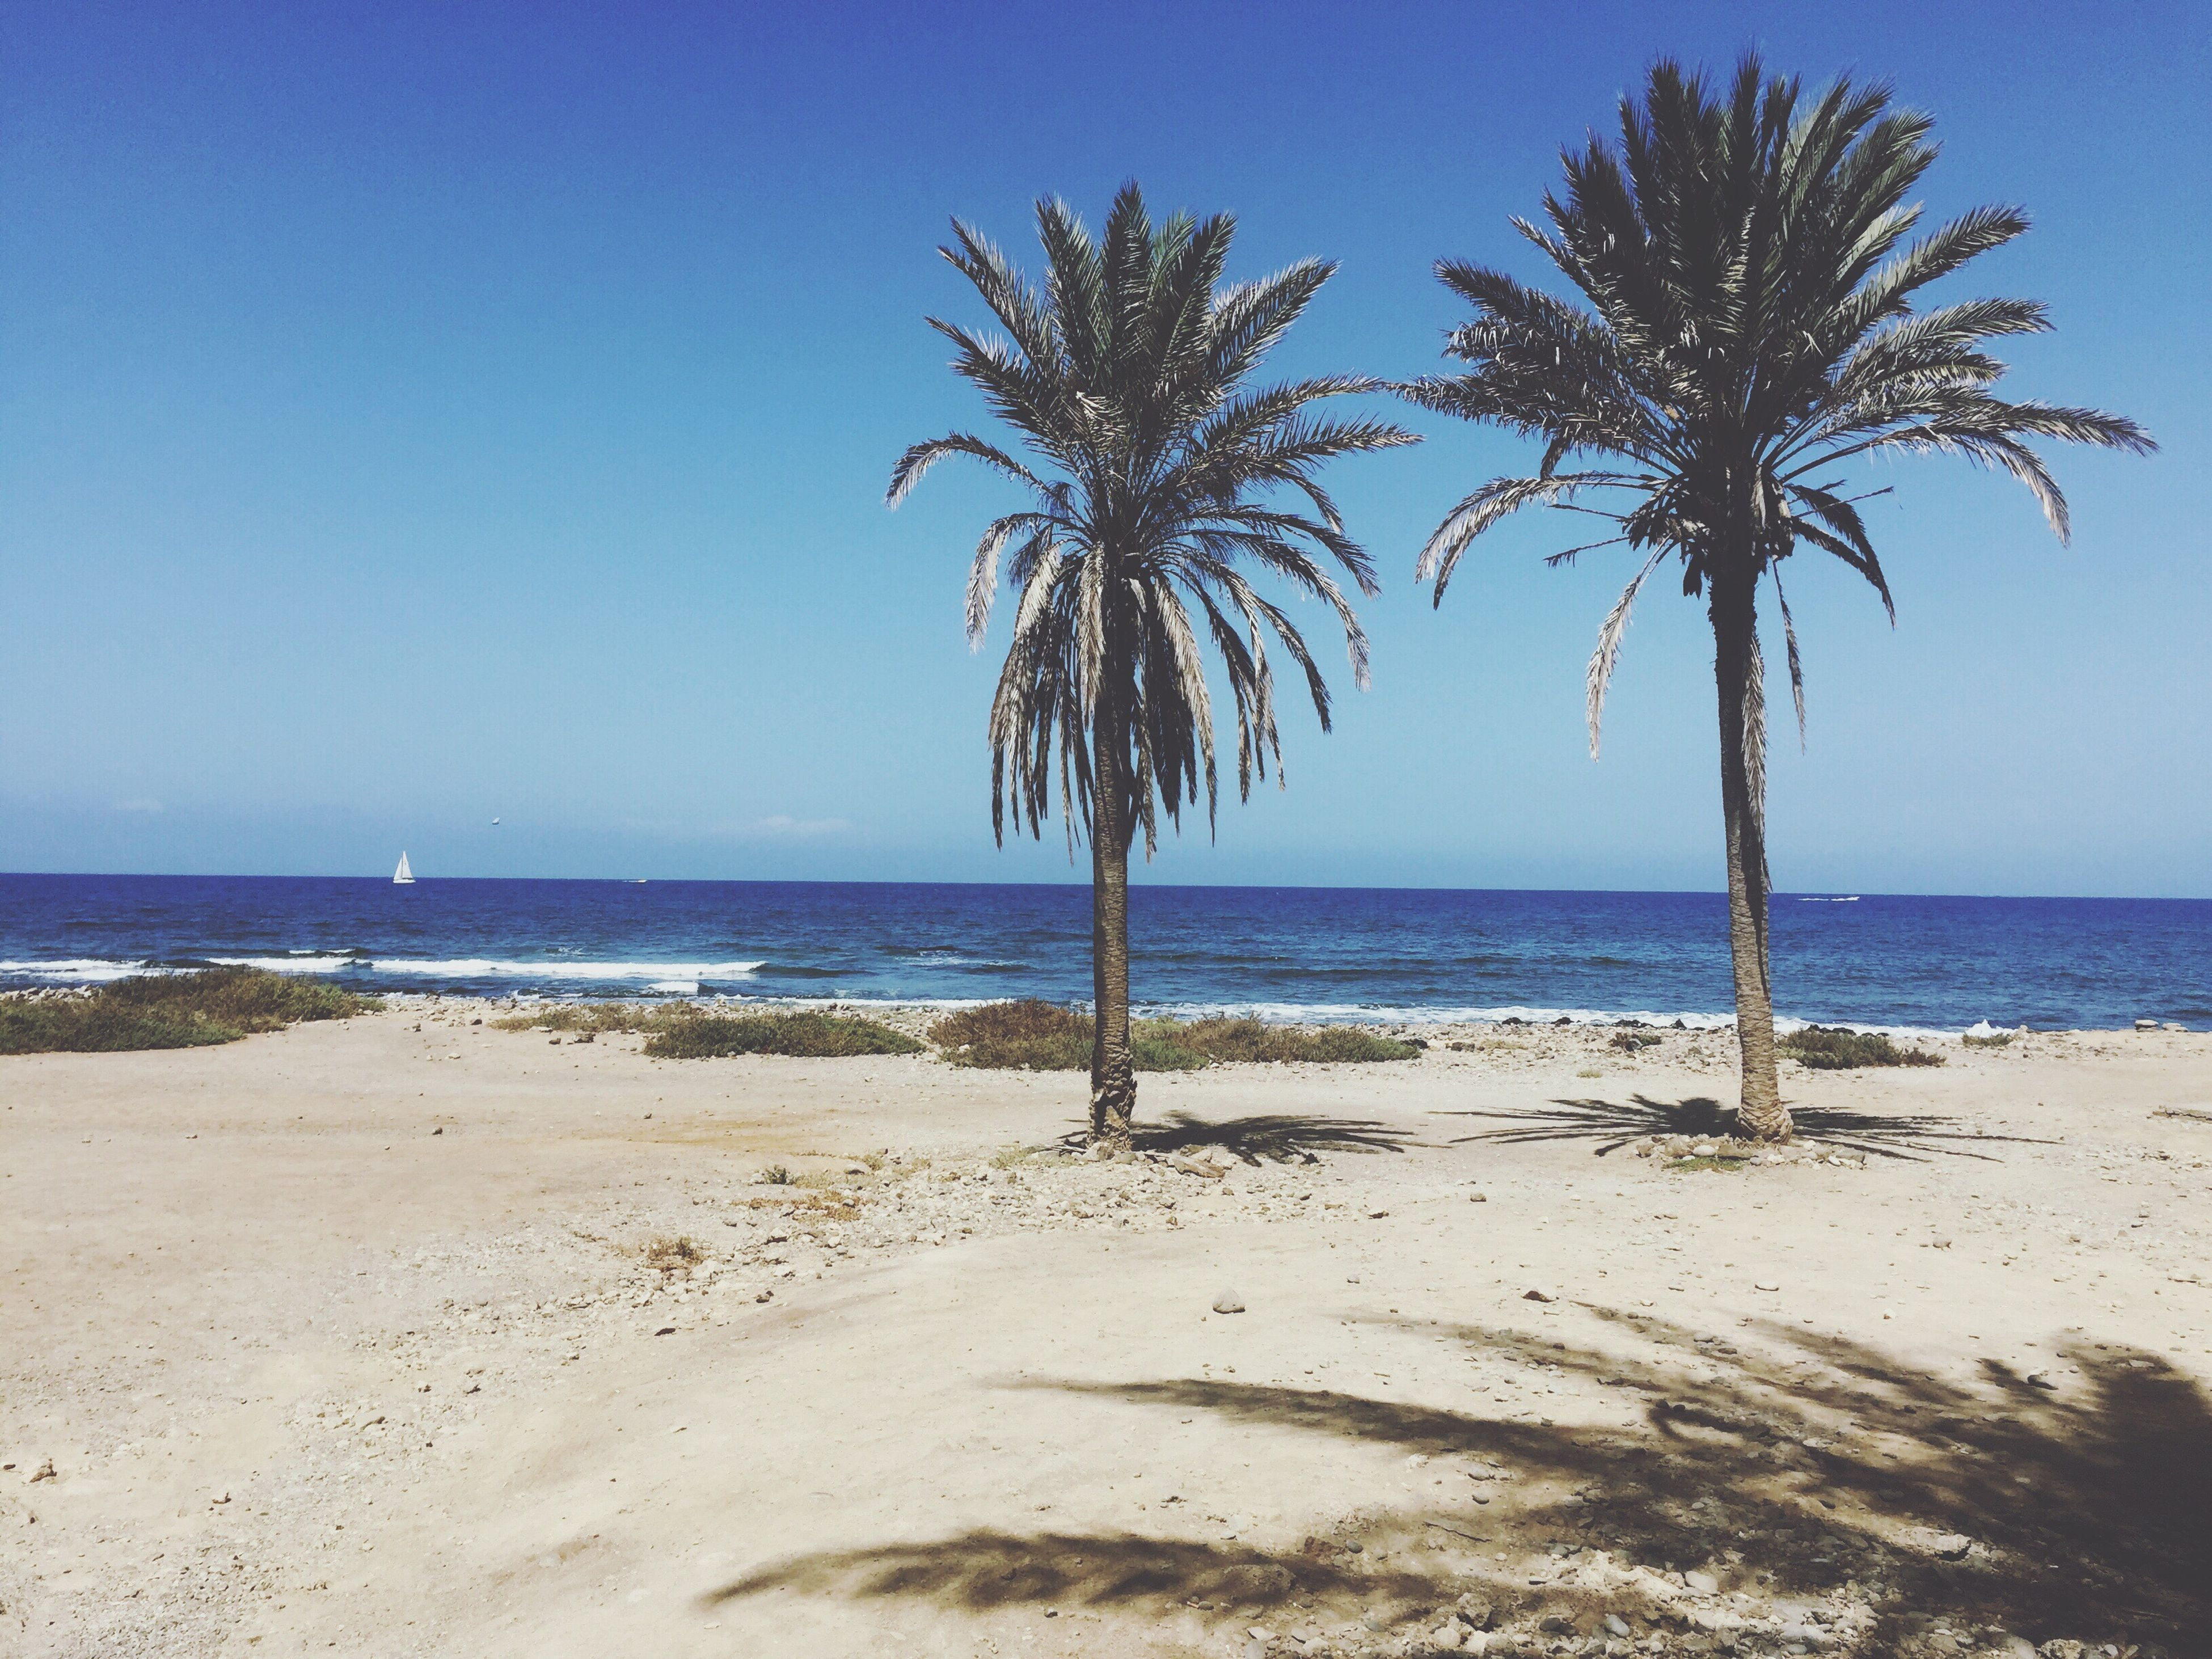 palm tree, sea, beach, horizon over water, tranquil scene, sand, water, tranquility, blue, growth, clear sky, scenics, tree, shore, nature, beauty in nature, solitude, tree trunk, outdoors, calm, day, sky, tall - high, remote, non-urban scene, tourism, no people, vacations, growing, seascape, majestic, green color